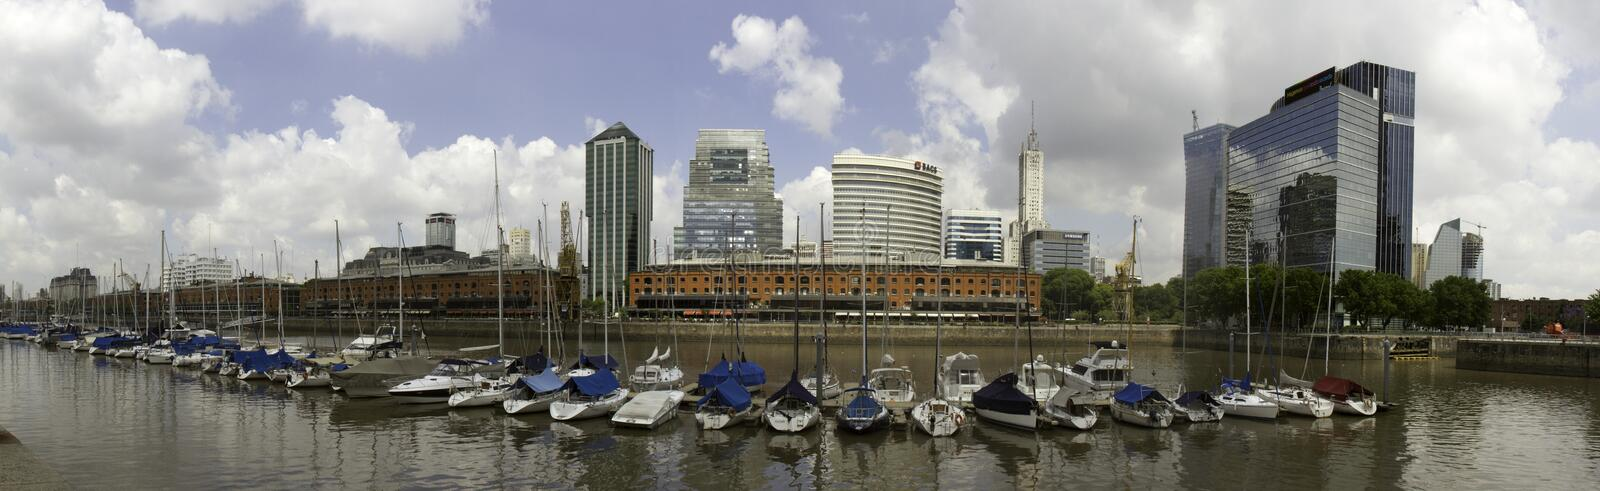 Panorama Puerto Madero, Buenos Aires, Argentine photographie stock libre de droits